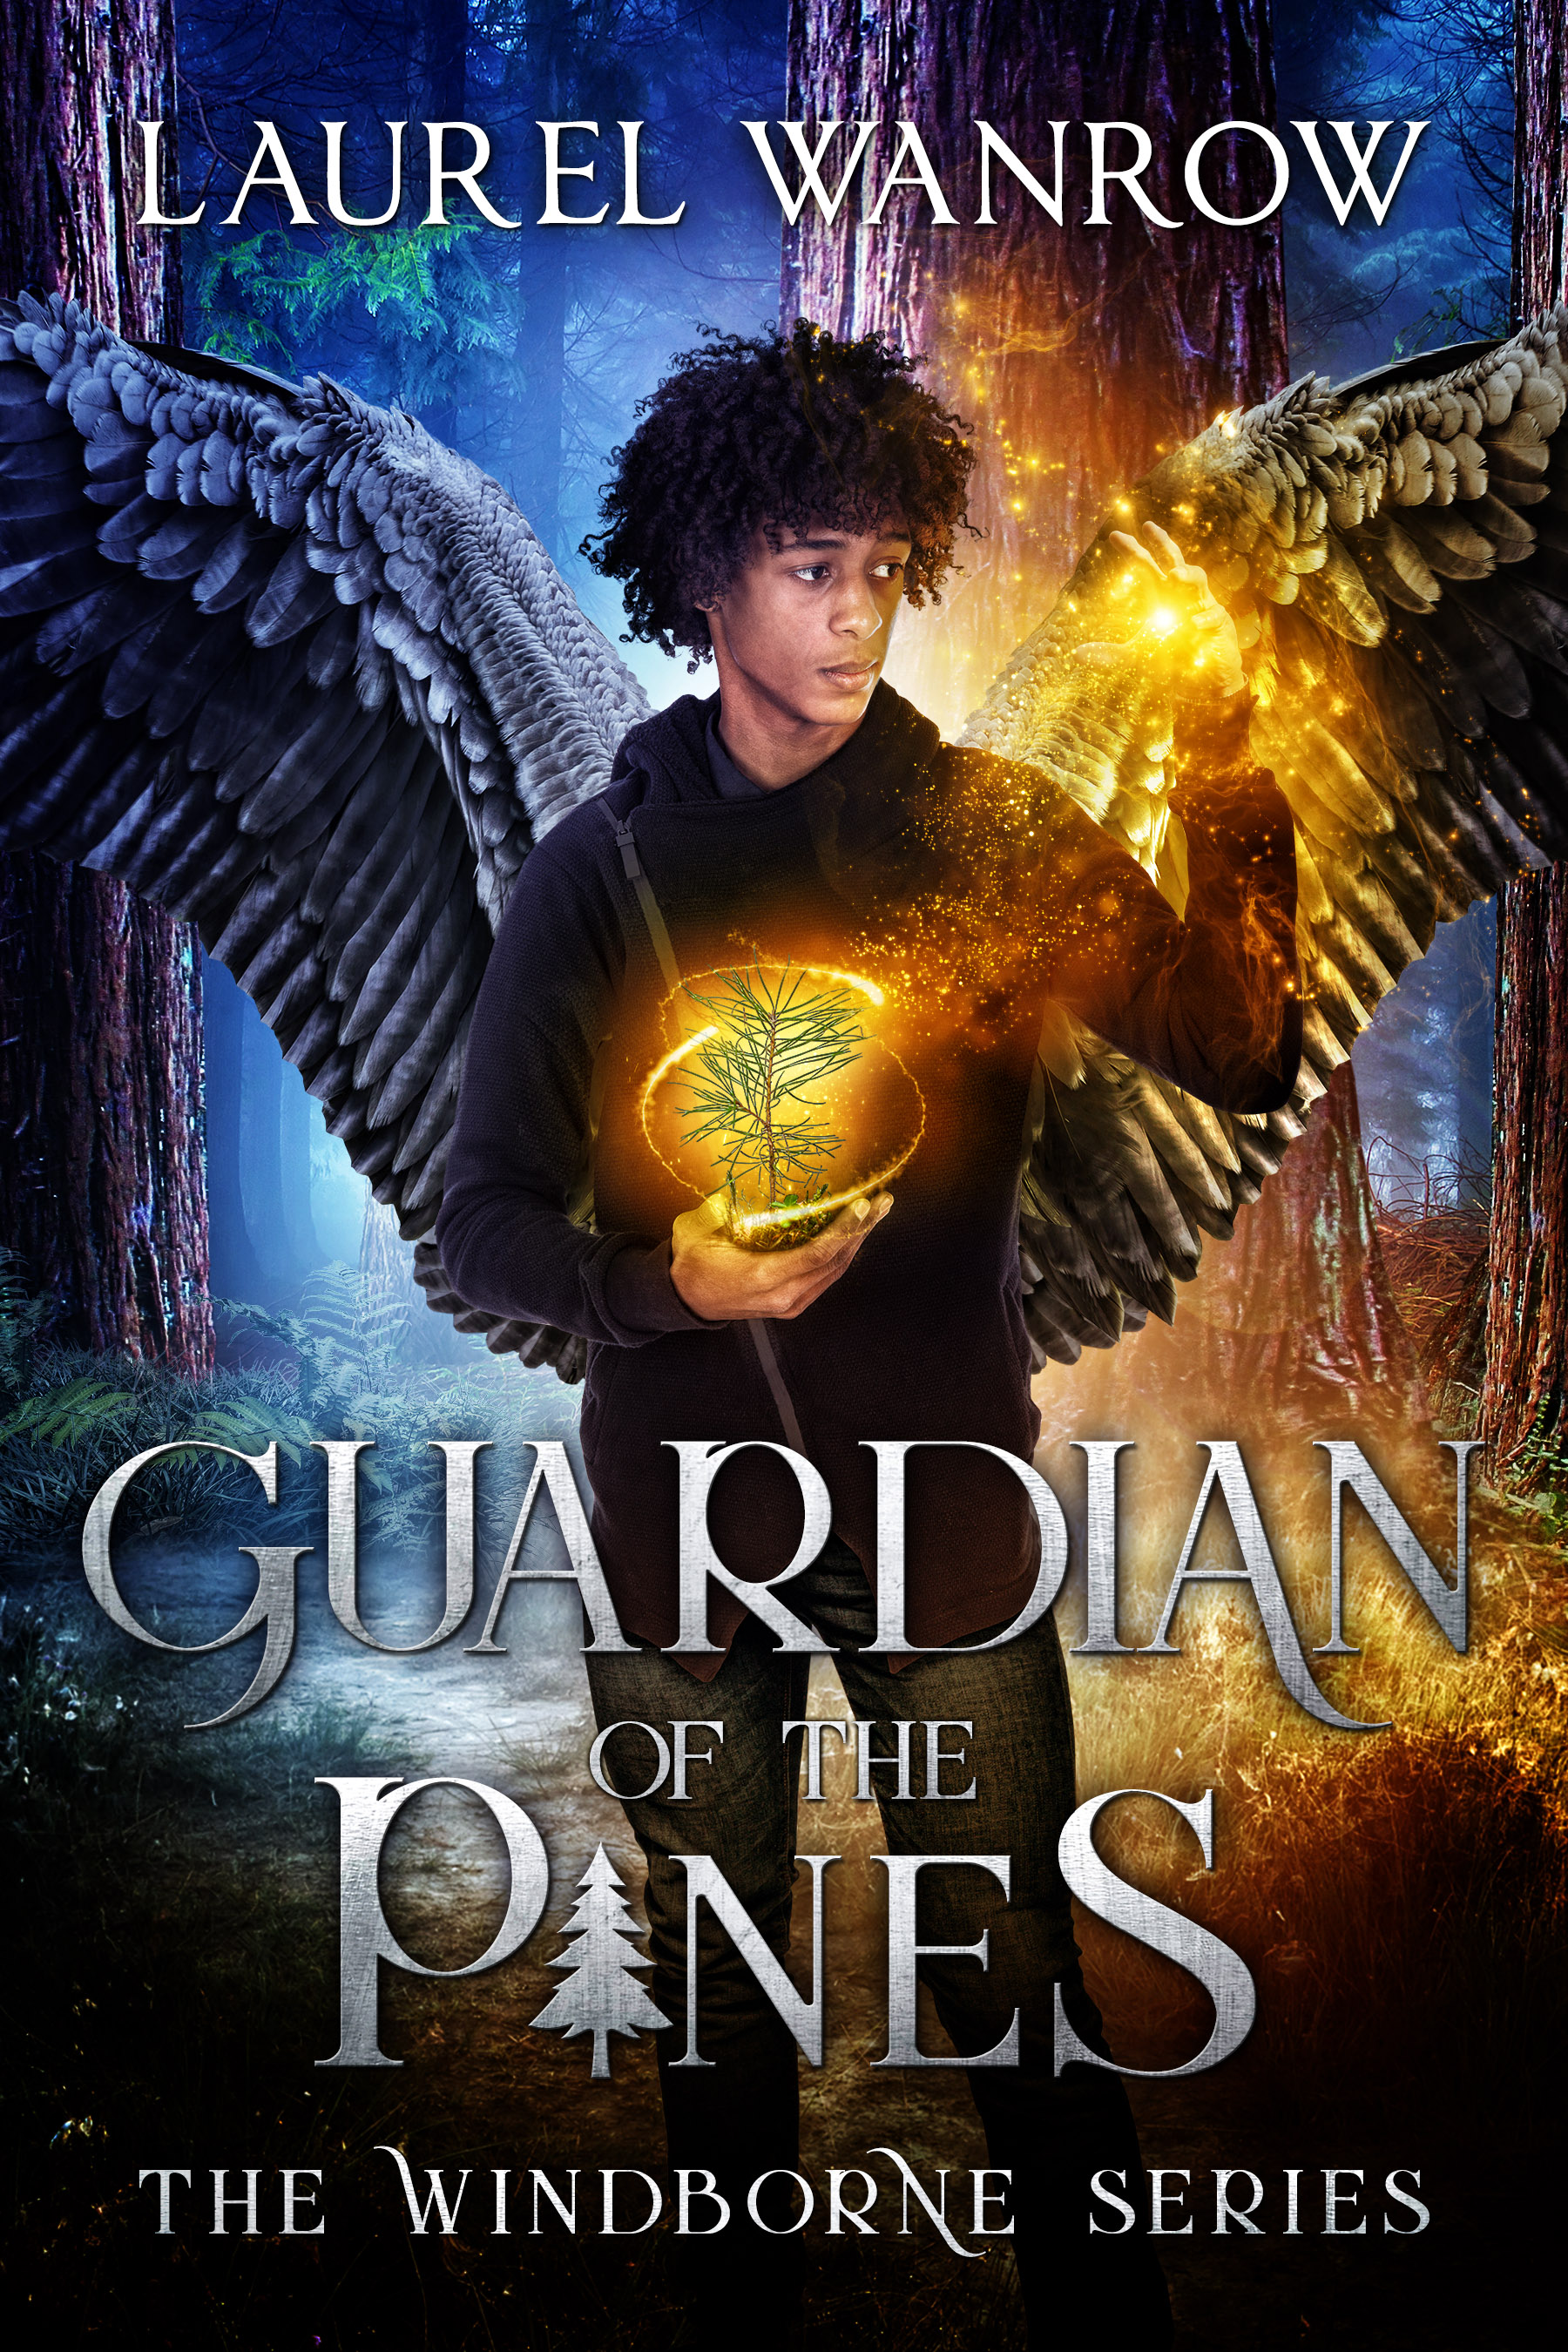 Guest Post: Guardian of the Pines by Laurel Wanrow